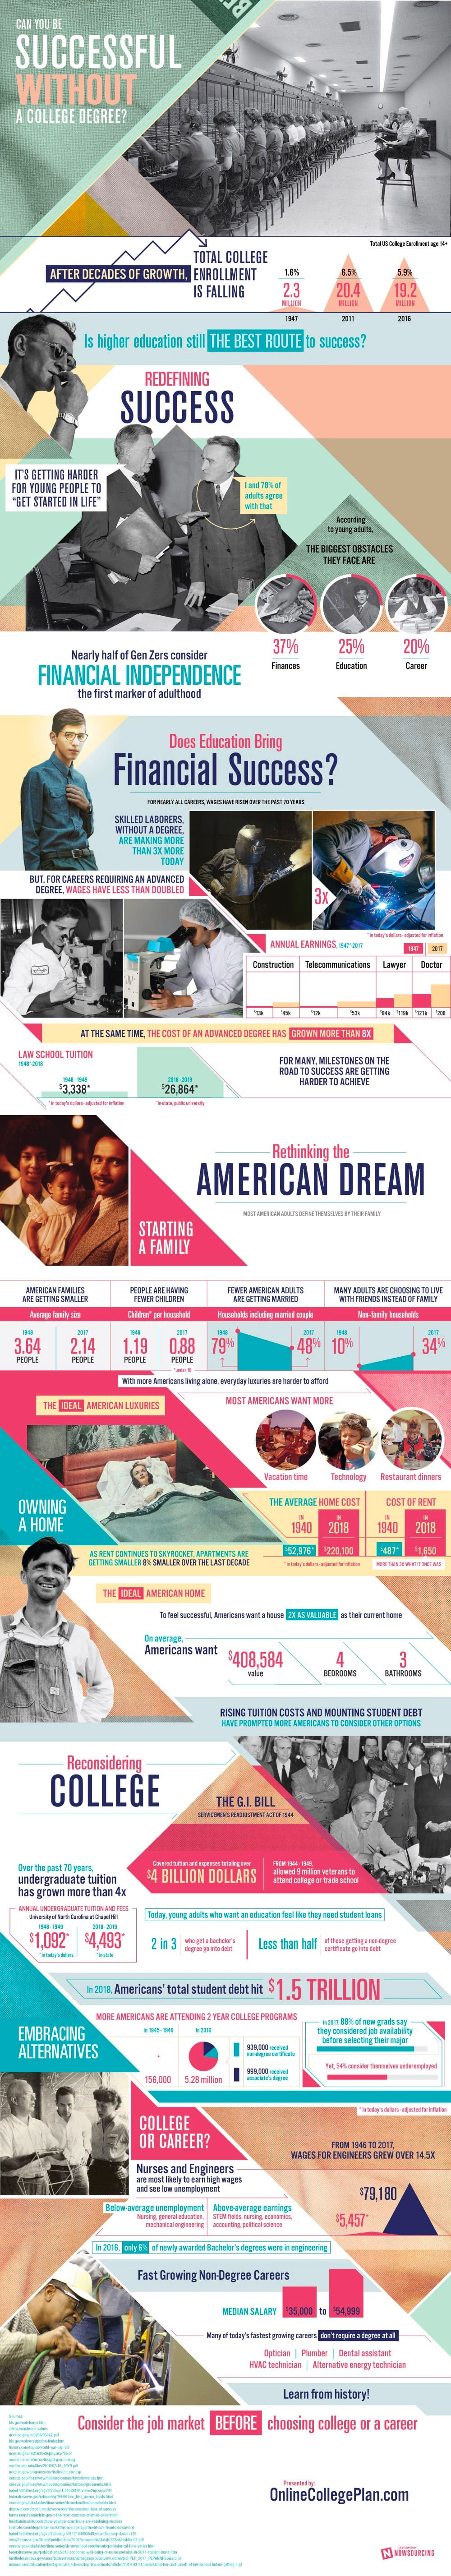 Can You Be Successful Without Getting a College Degree? (Infographic)